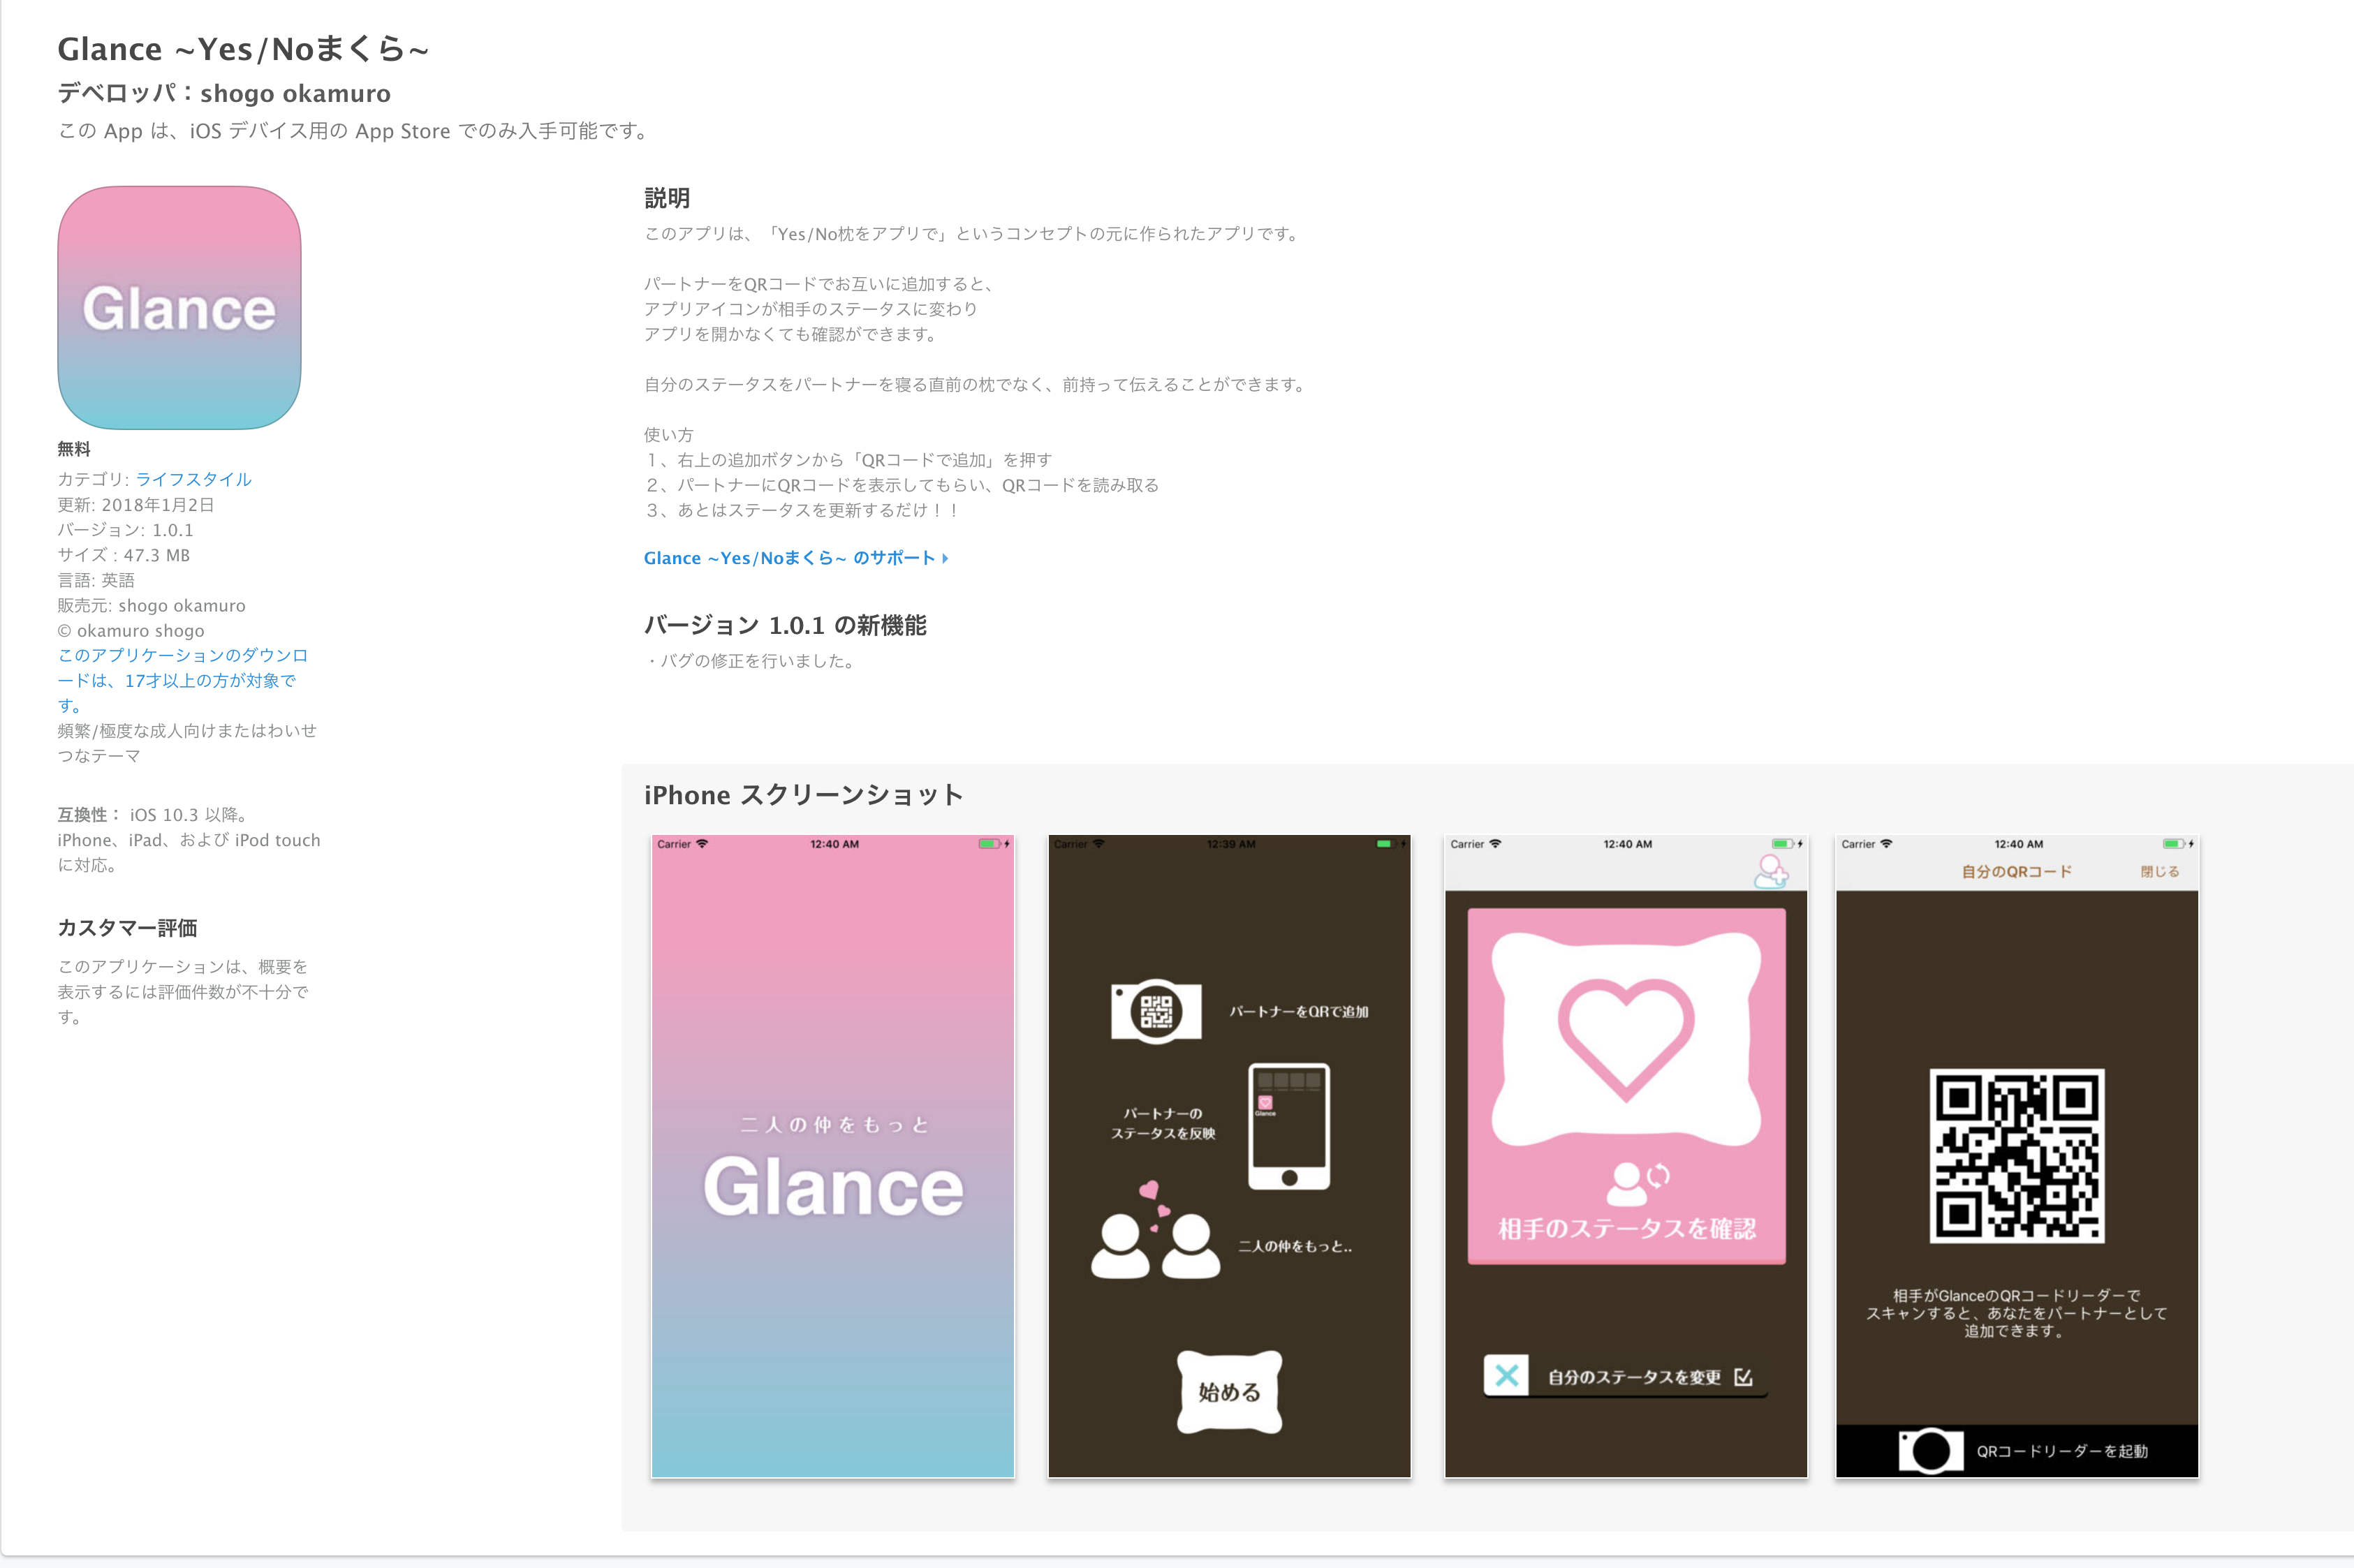 itunes.apple.com_jp_app_glance-yes-no%E3%81%BE%E3%81%8F%E3%82%89_id1294641754_l=ja&ls=1&mt=8.png